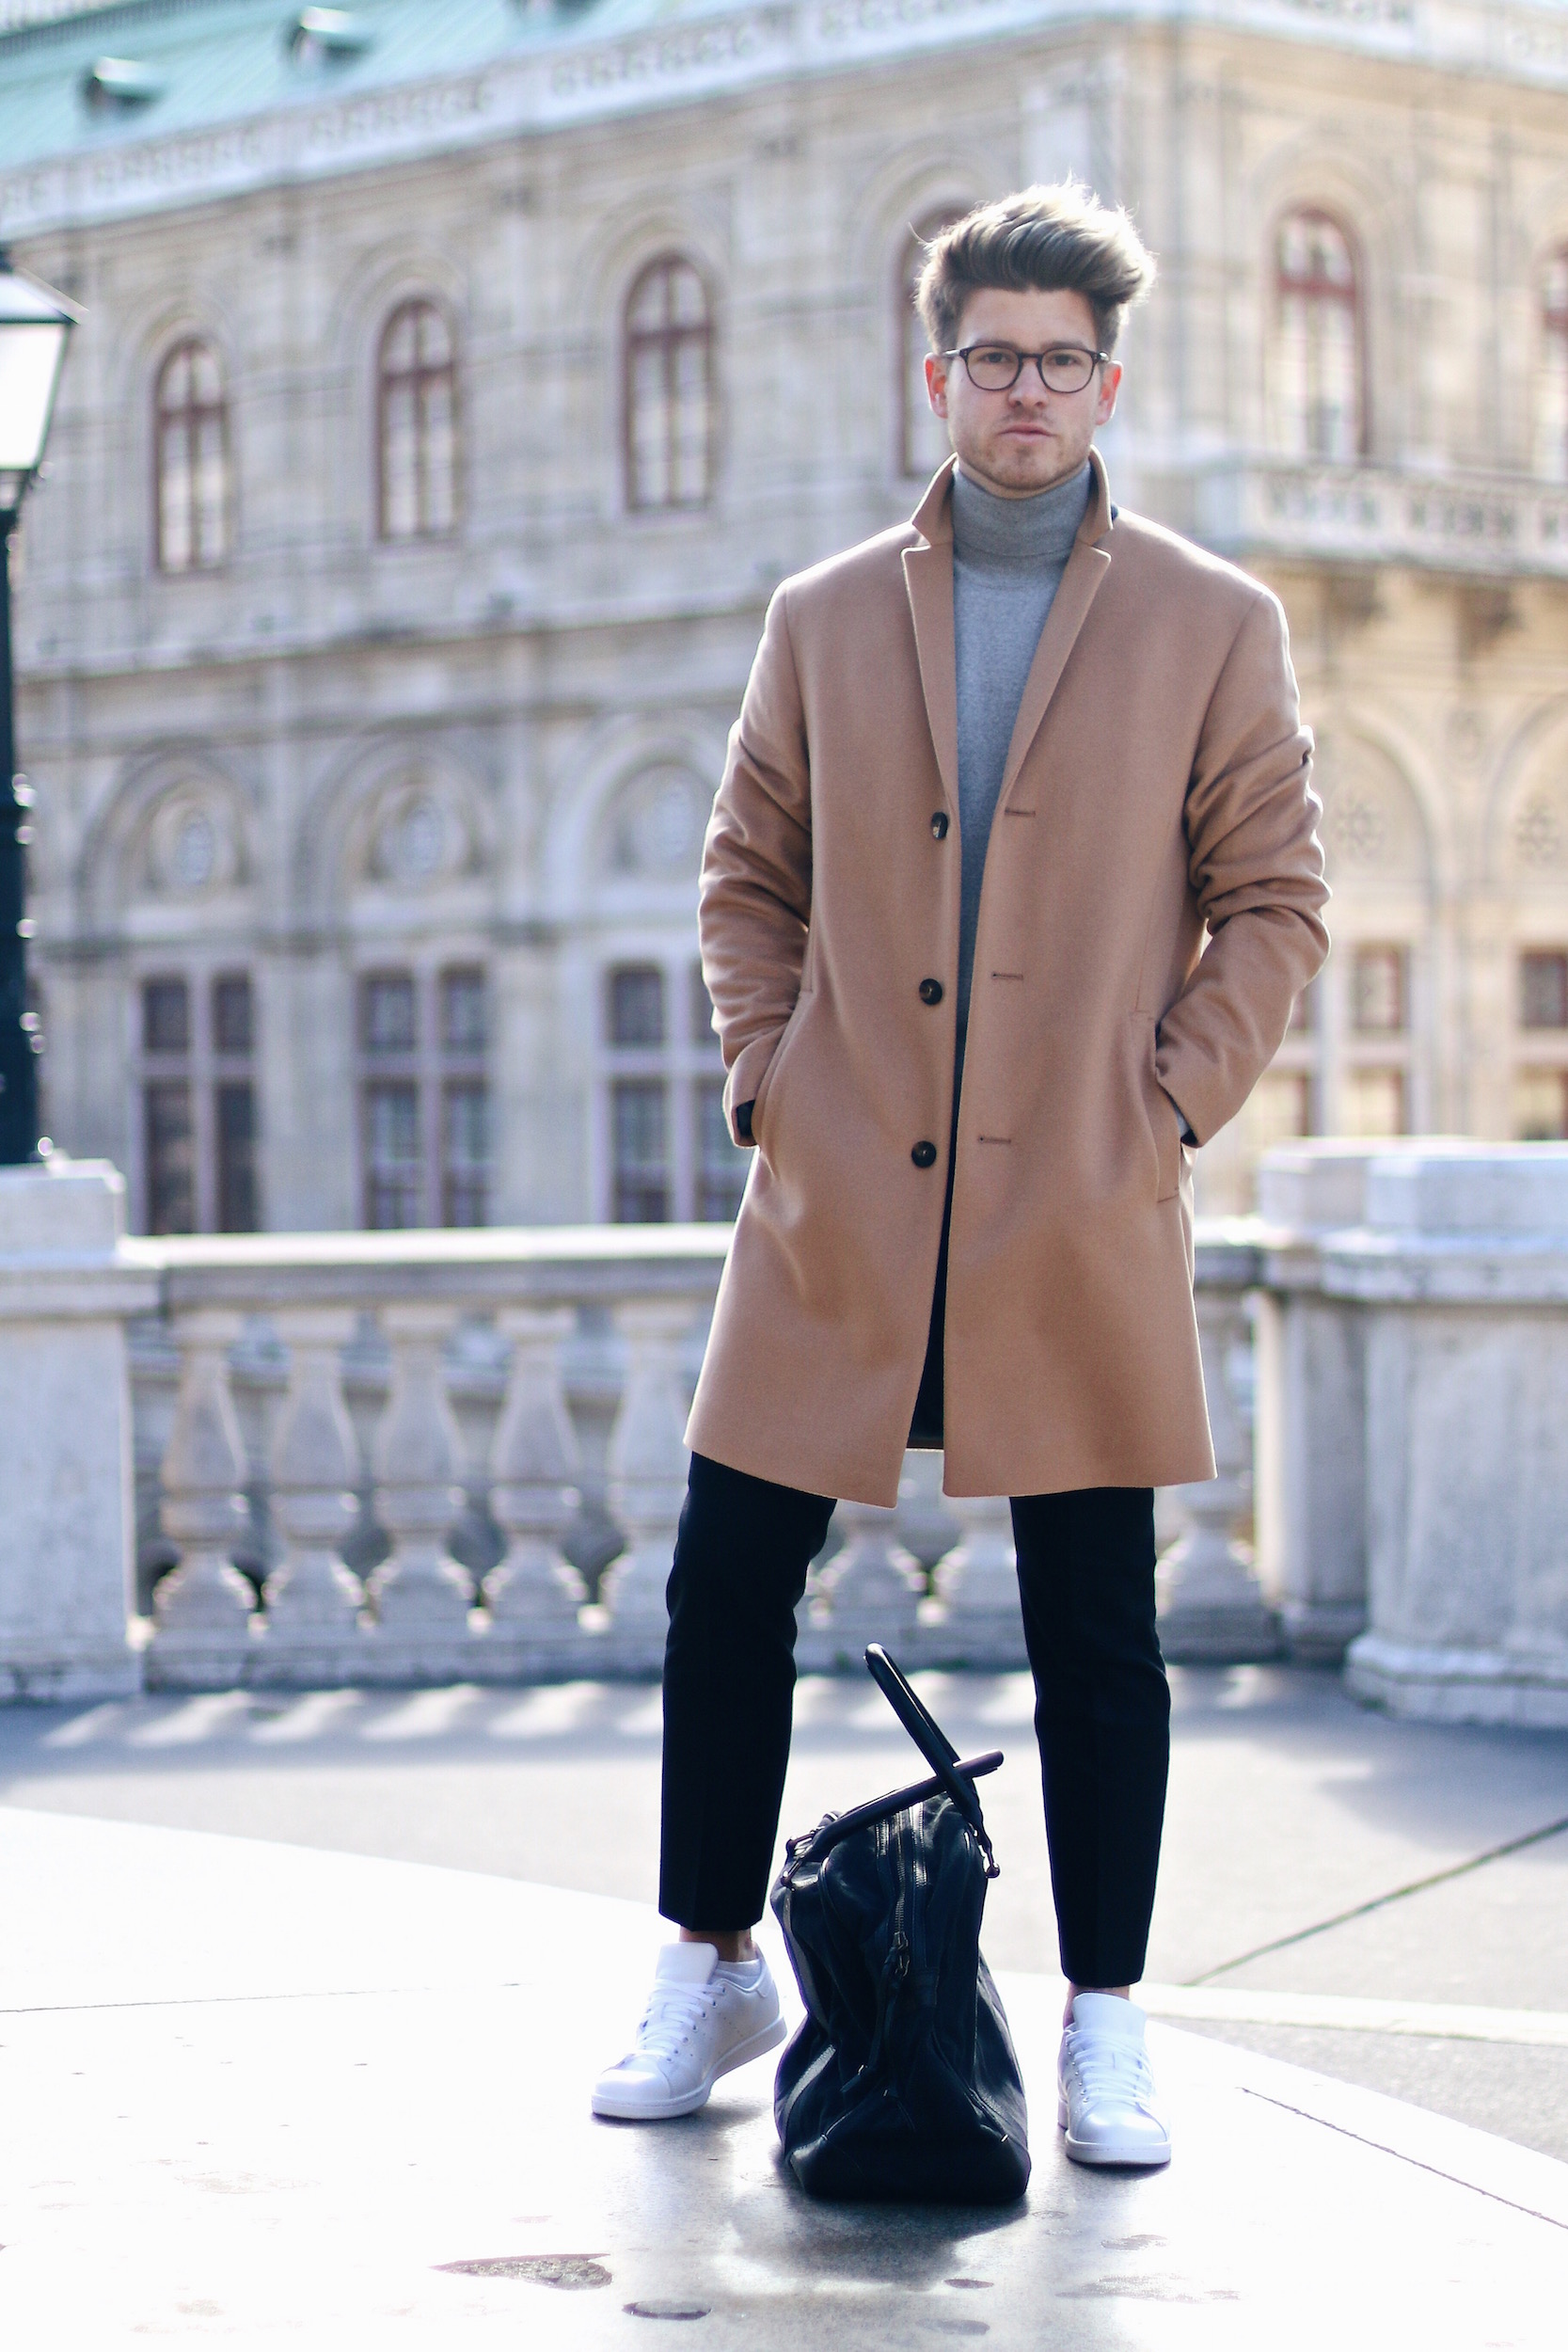 Peek & Cloppenburg Online Shop Launch Austria_Outfit Calvin Klein Camel Coat by Meanwhile in Awesometown_Austrian Mens Fashion and Lifestyle Blog 9